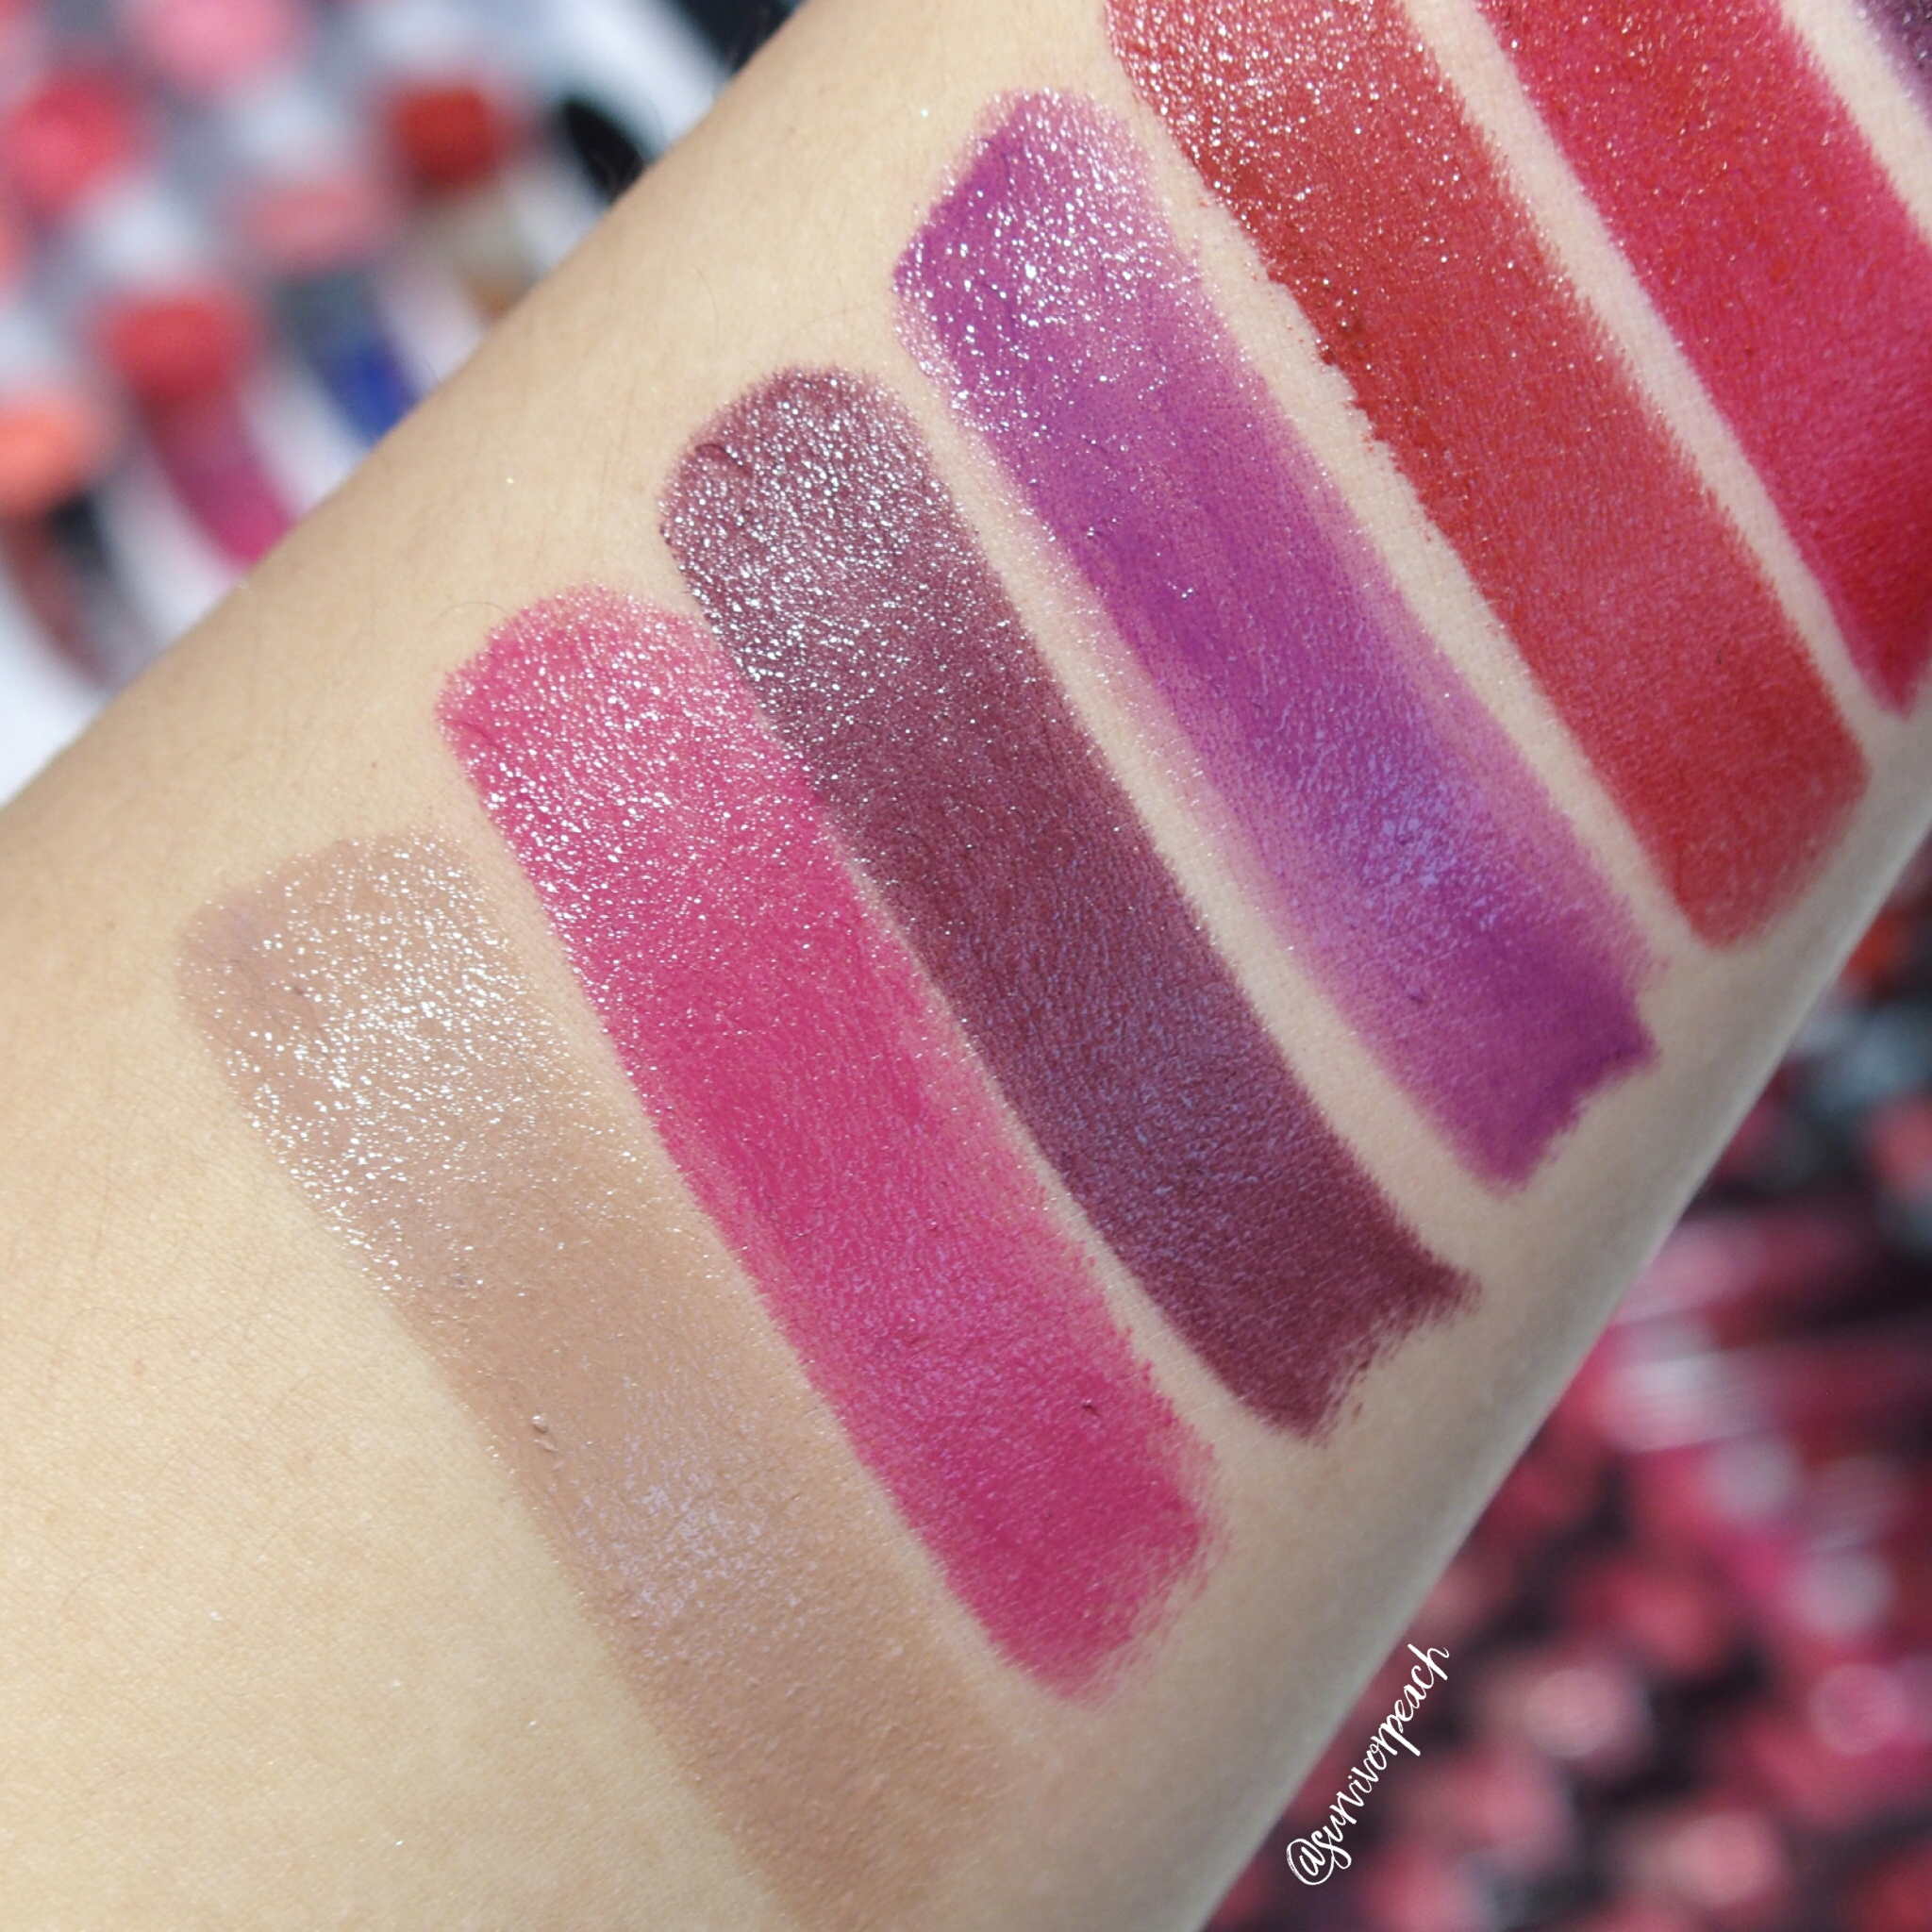 Sephora Collection Lipstick Rouge Lacquer Lipstick swatches- L04 Empowered, L05 What's My Secret?, L06 Who Runs the World?, L07 Elegance, L21 No Regrets